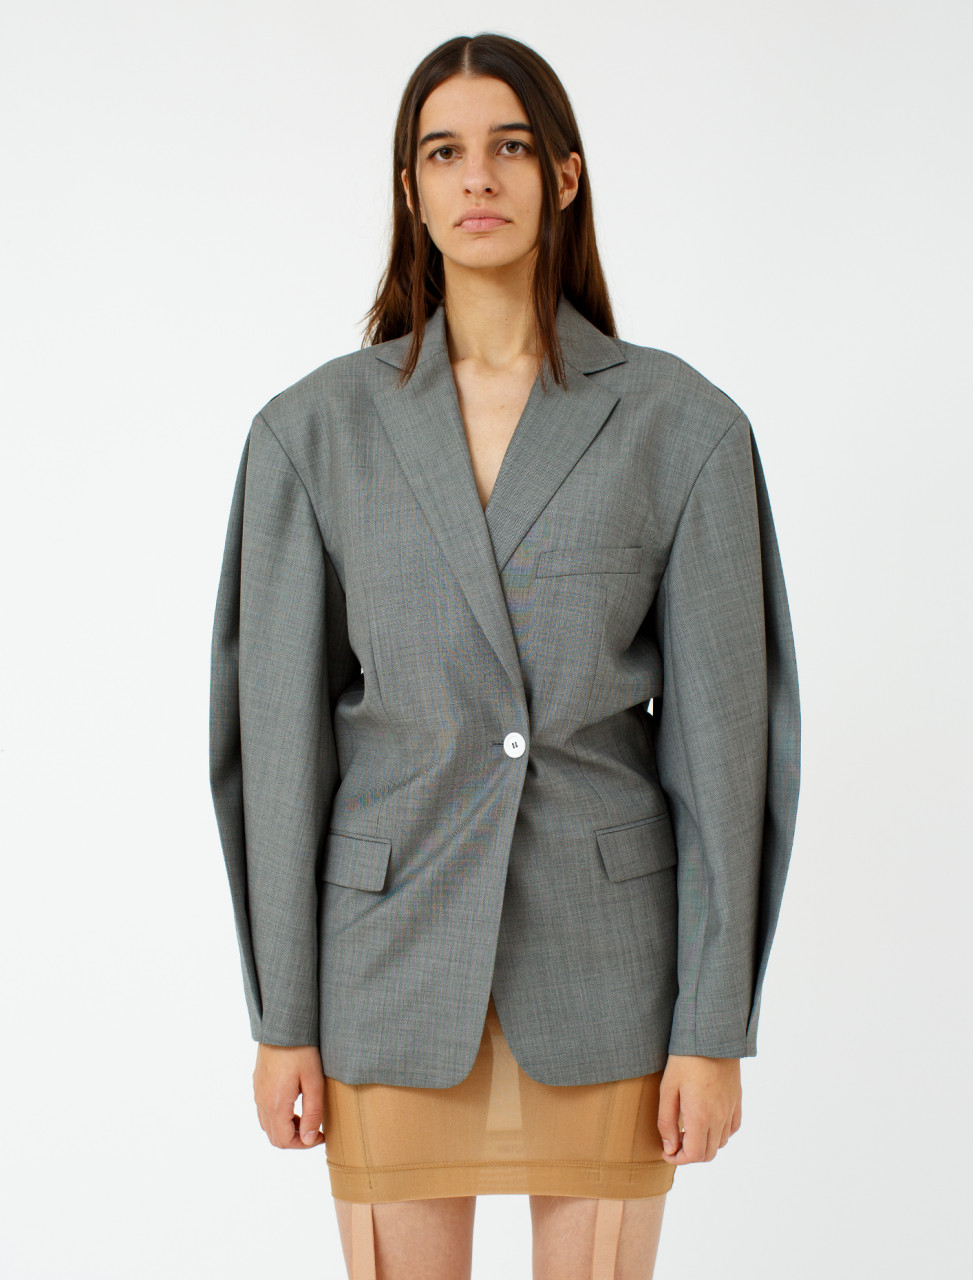 FN-WN-SUIT000097